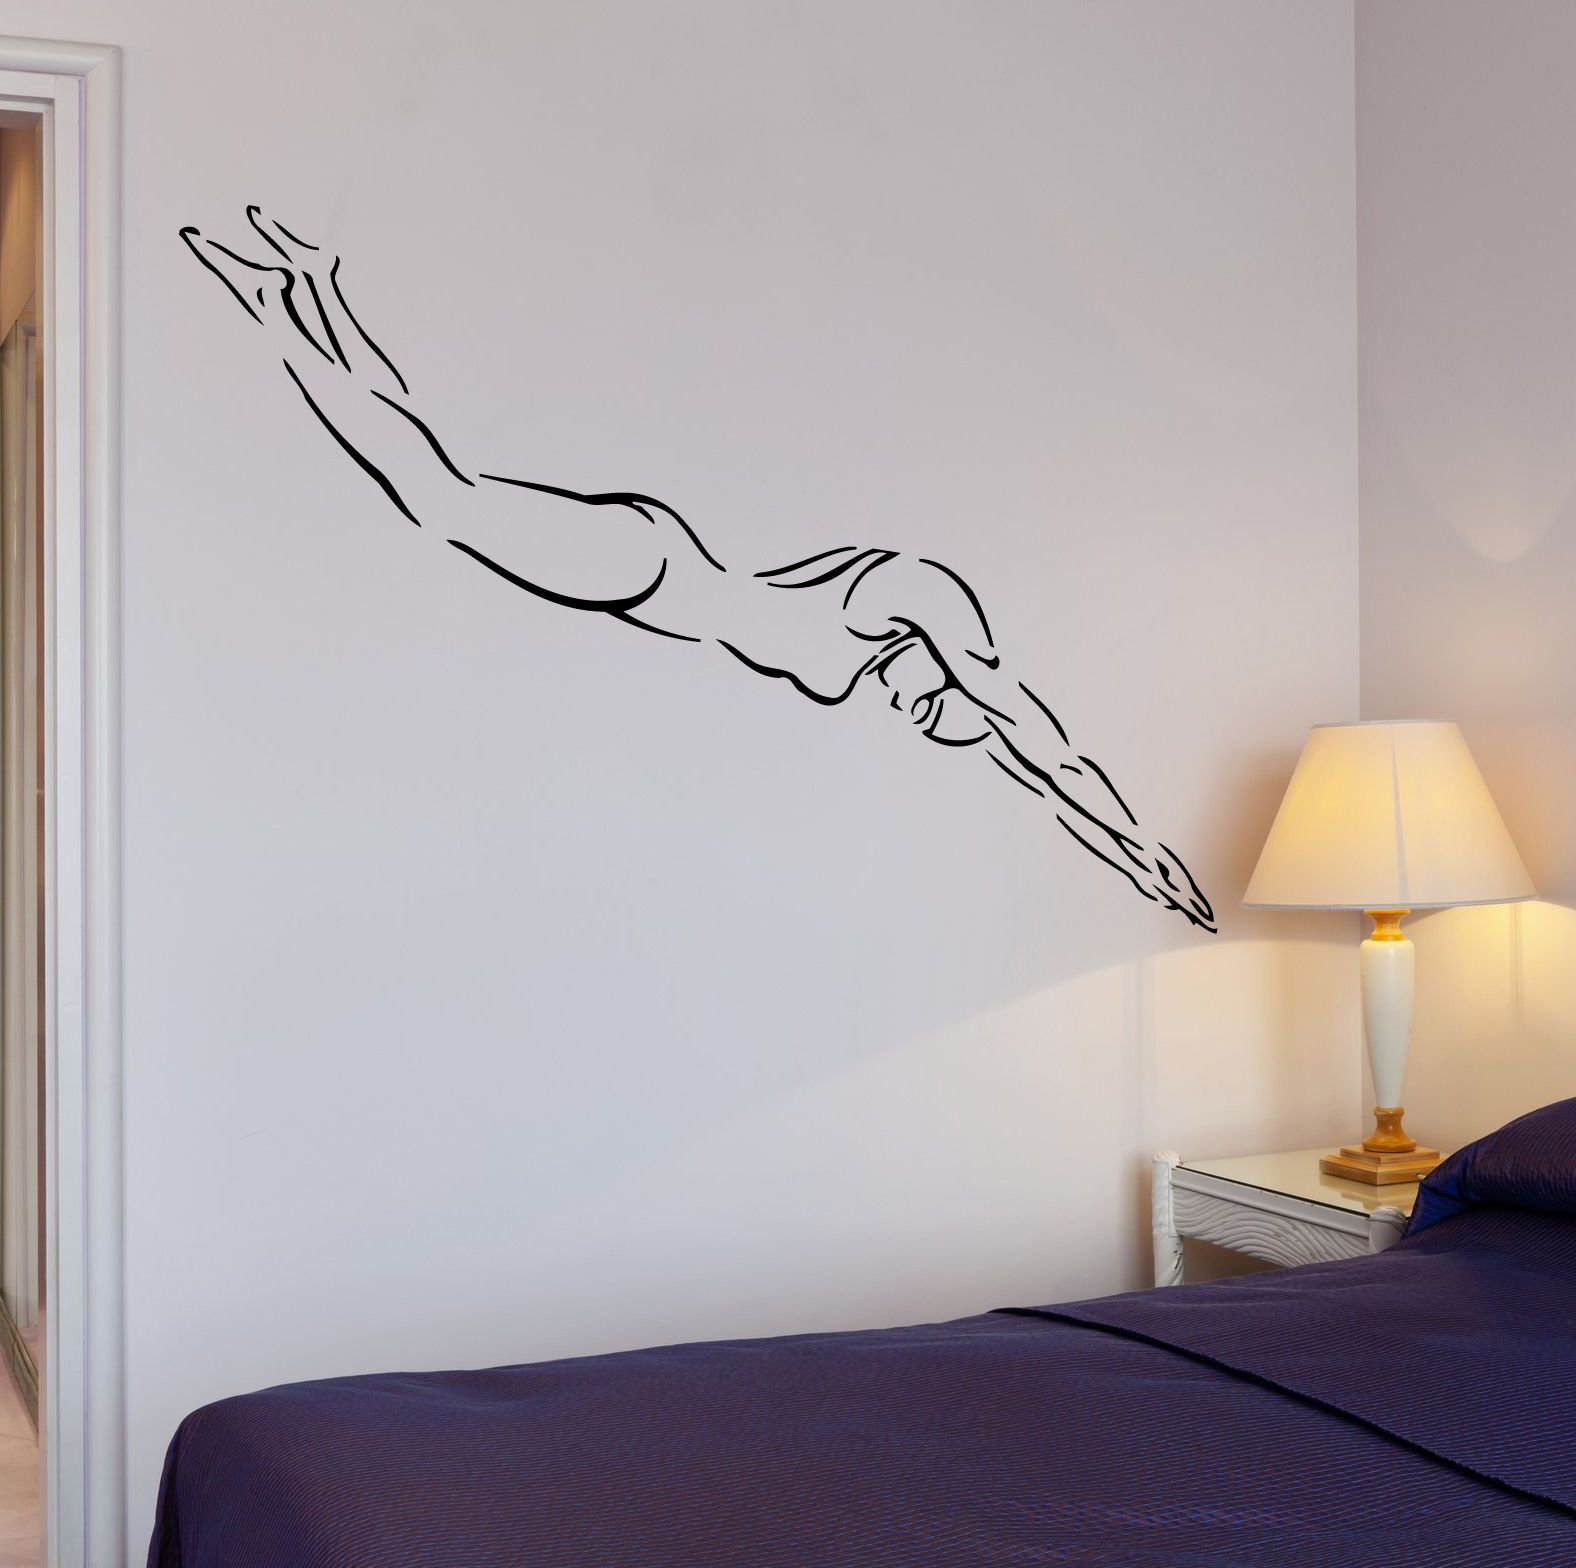 Room · Wall Decal Swim Swimmer Water Sport ... Part 57